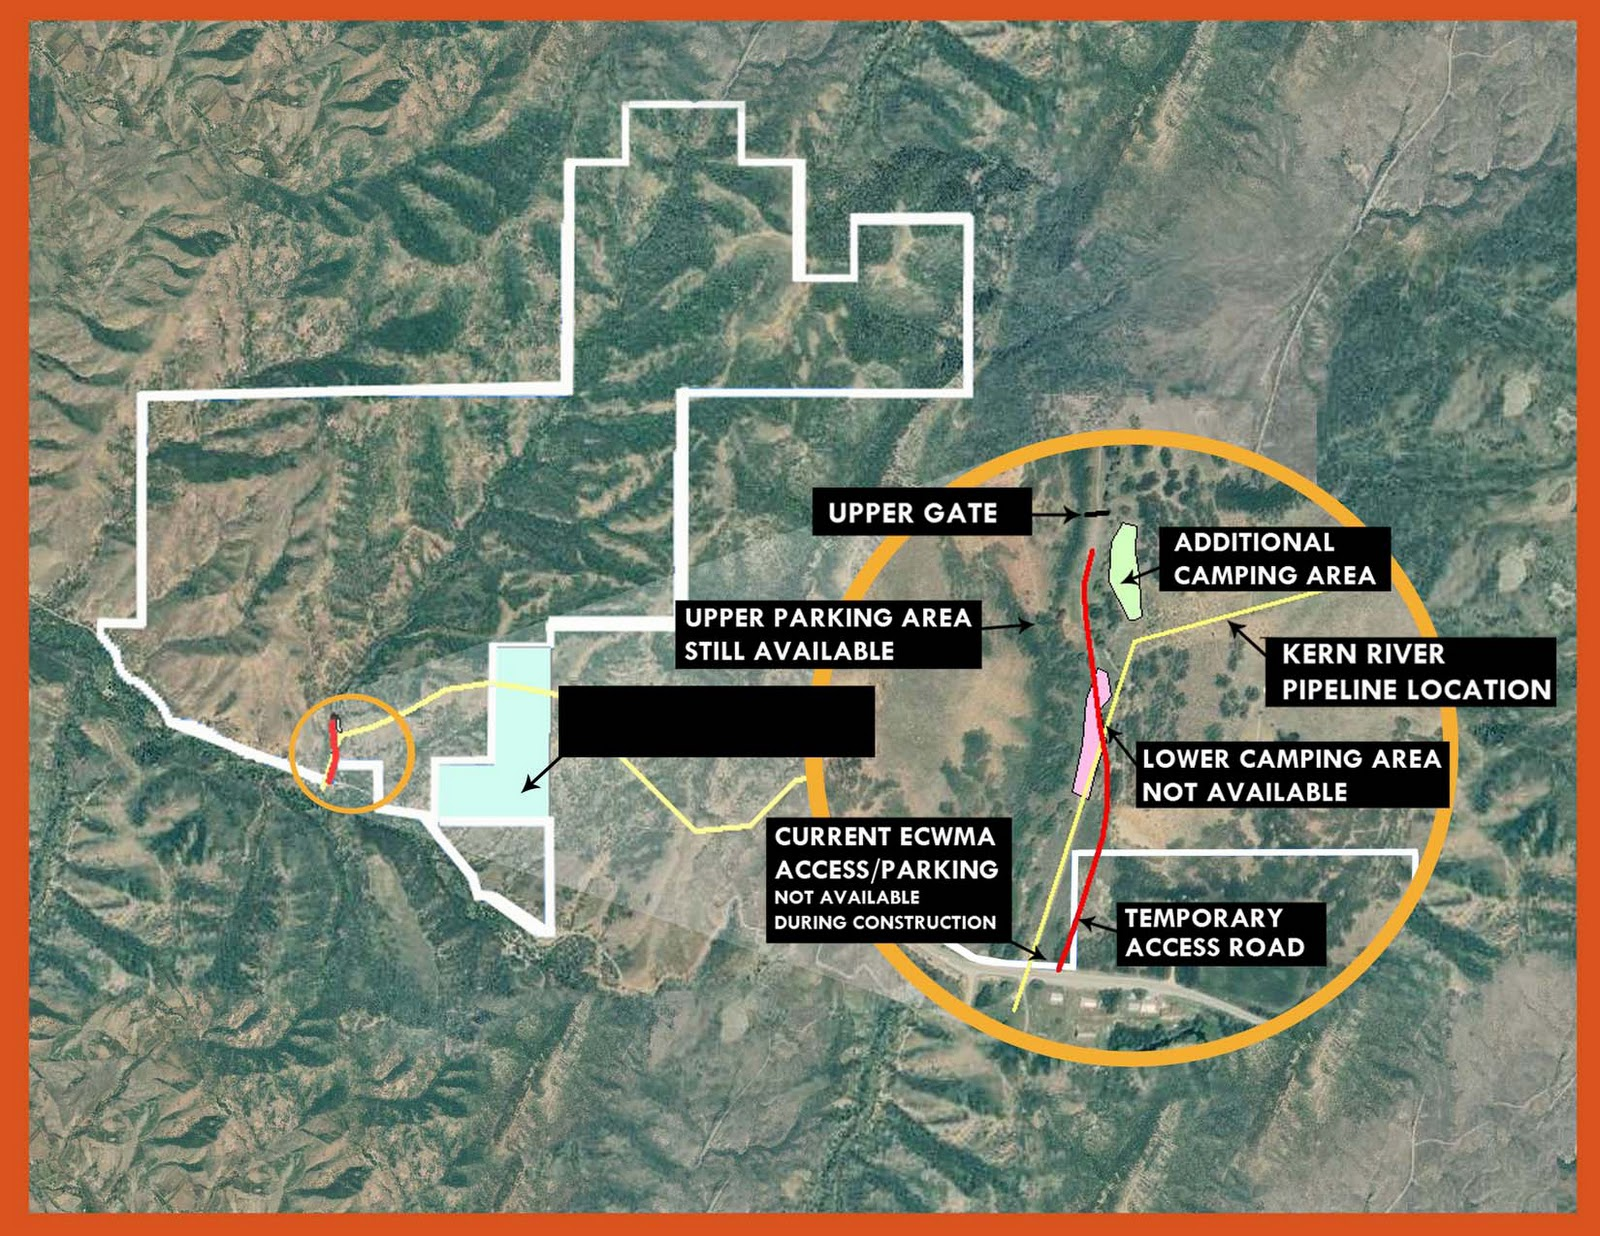 construction affects camping area adds acres to east canyon wma